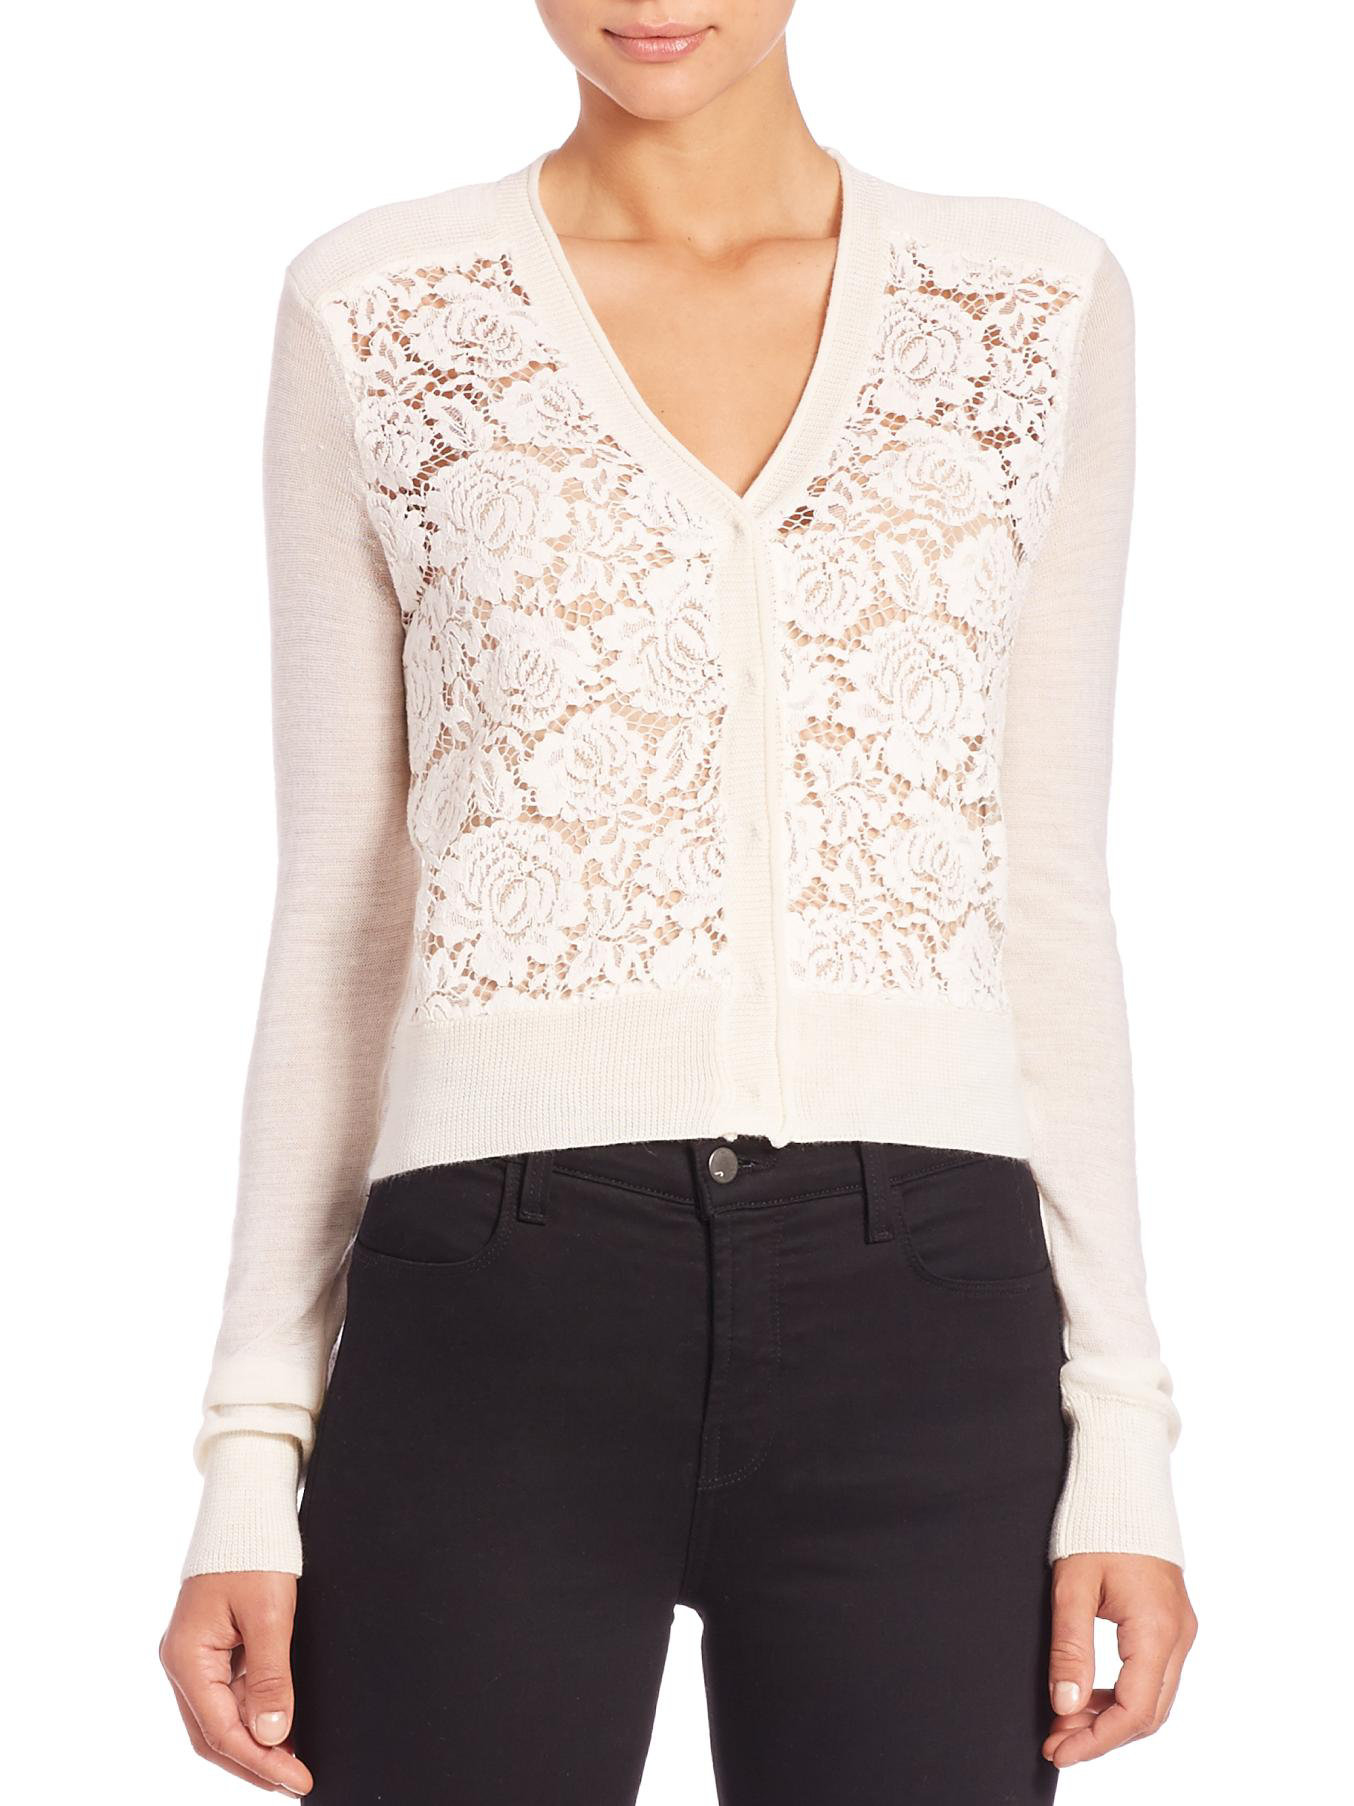 Rebecca taylor Lace-front Cardigan Sweater in White | Lyst